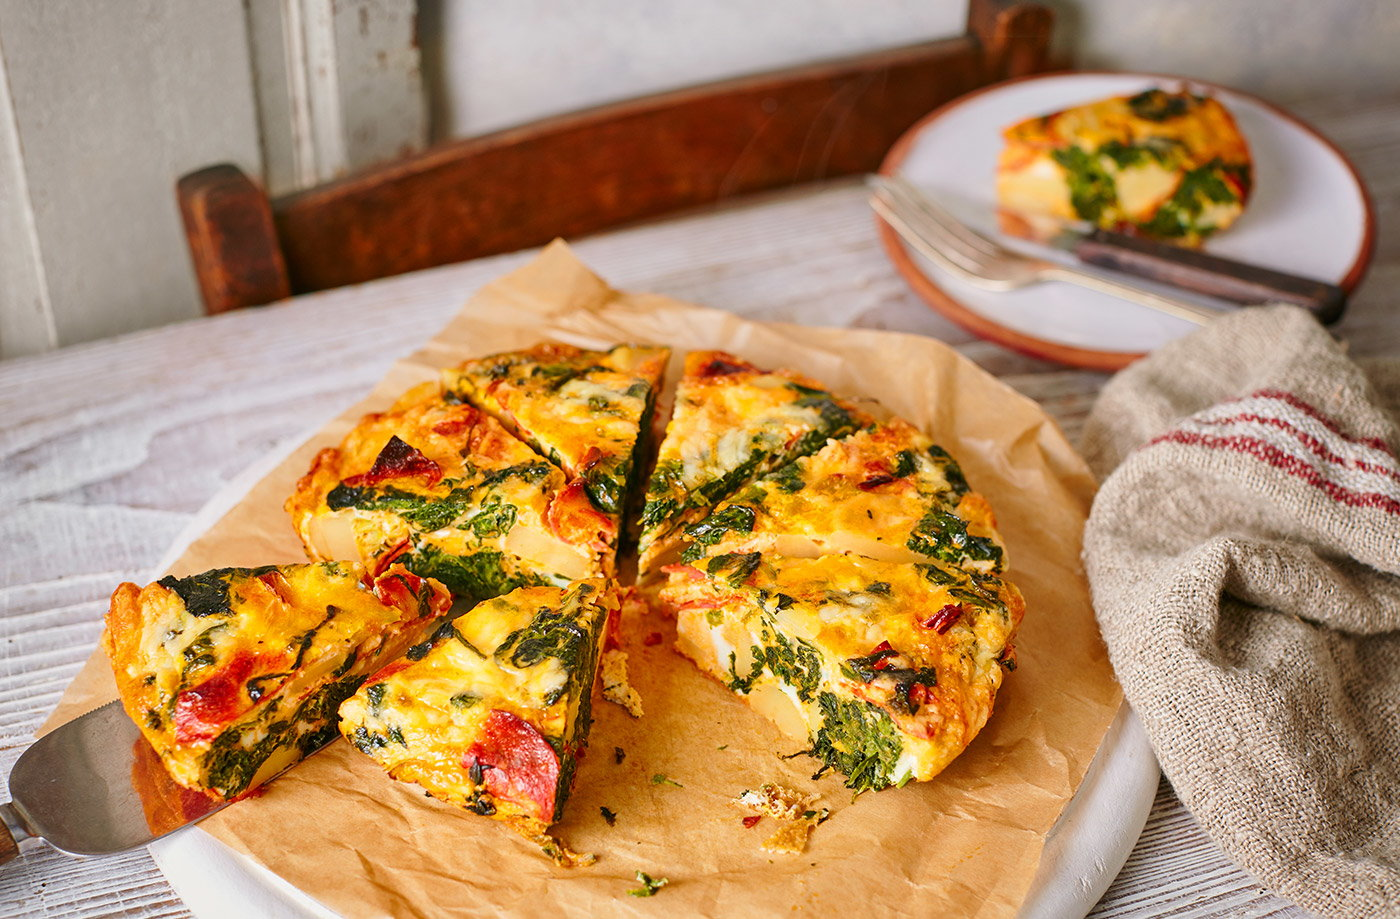 Whether meaty or packed with veg, we've got great frittata recipes for breakfast, lunch and dinner.